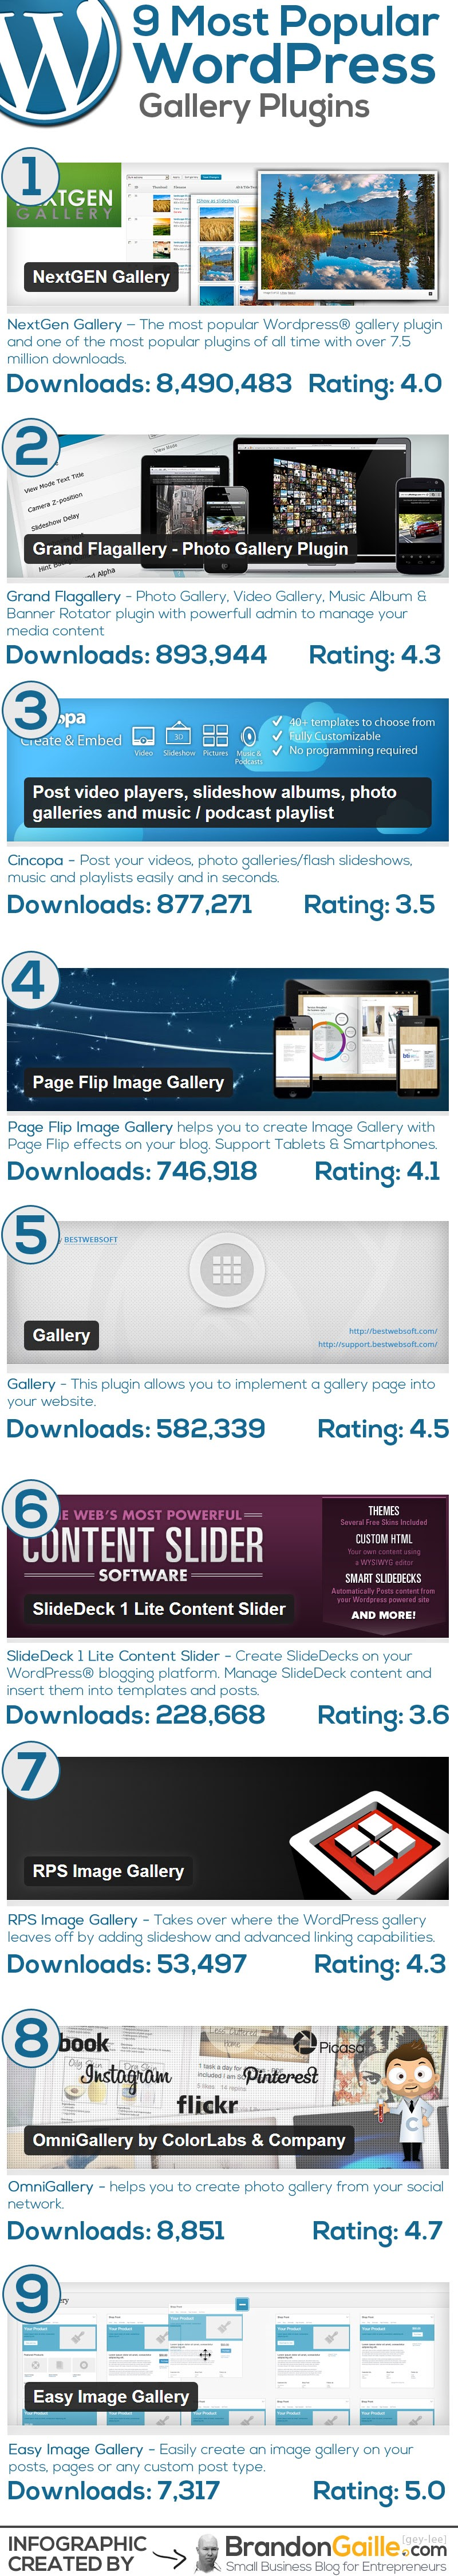 9-Most-Popular-WordPress-Gallery-Plugins #Infographic